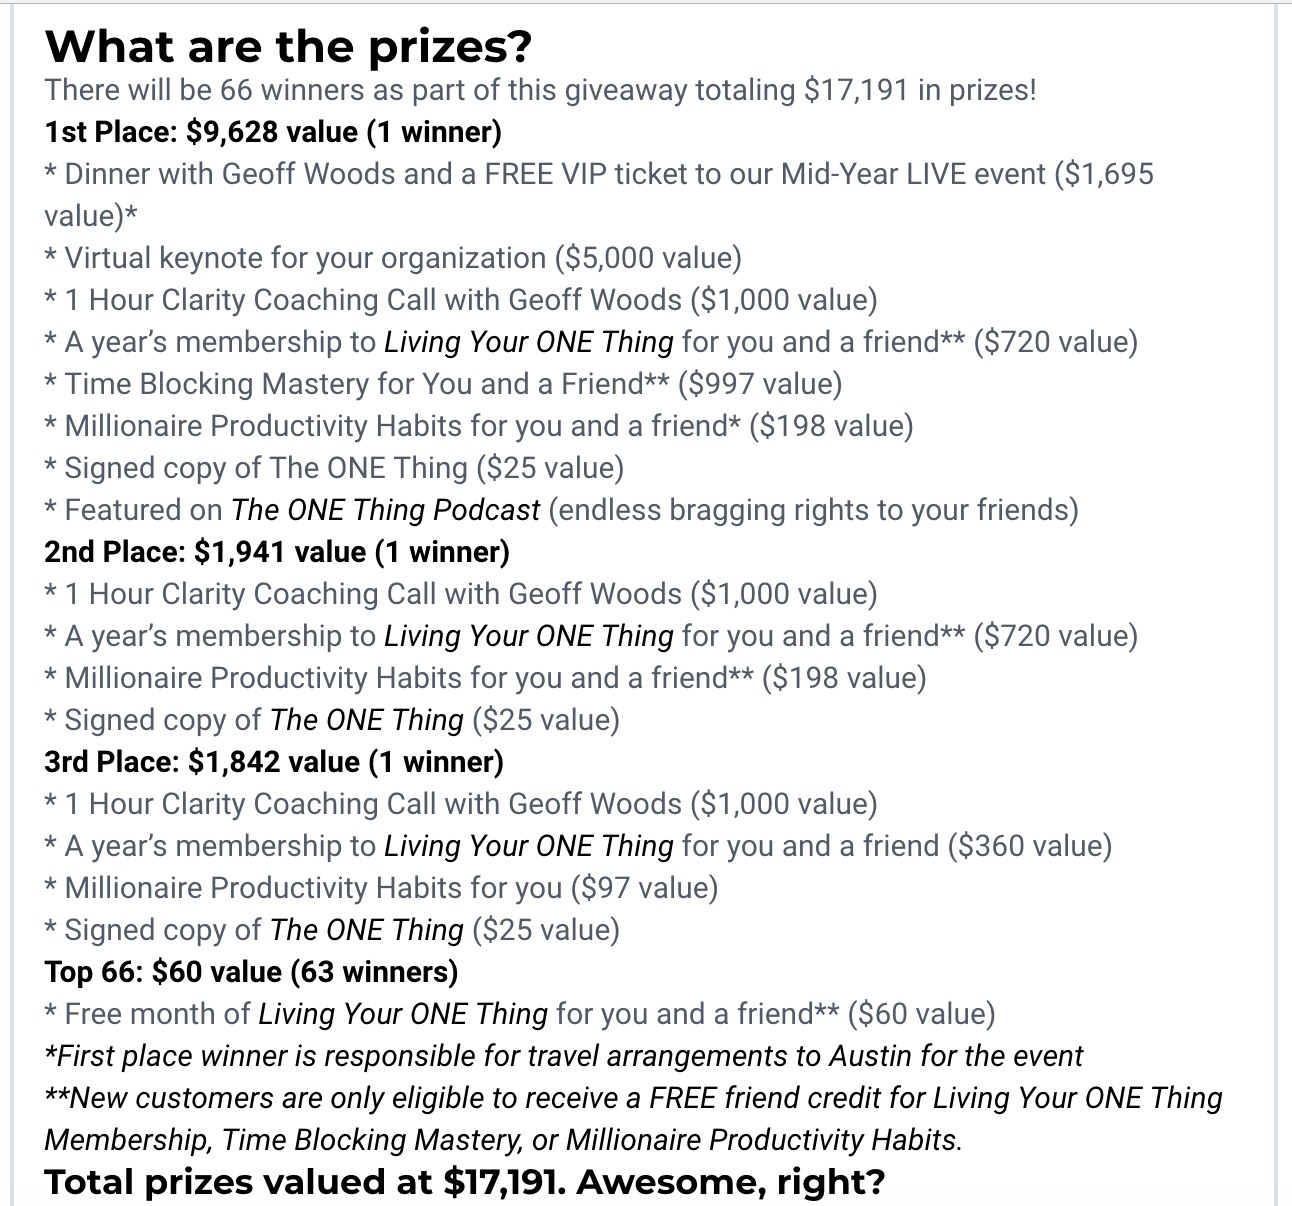 Screenshot showing prizes for a sweepstakes